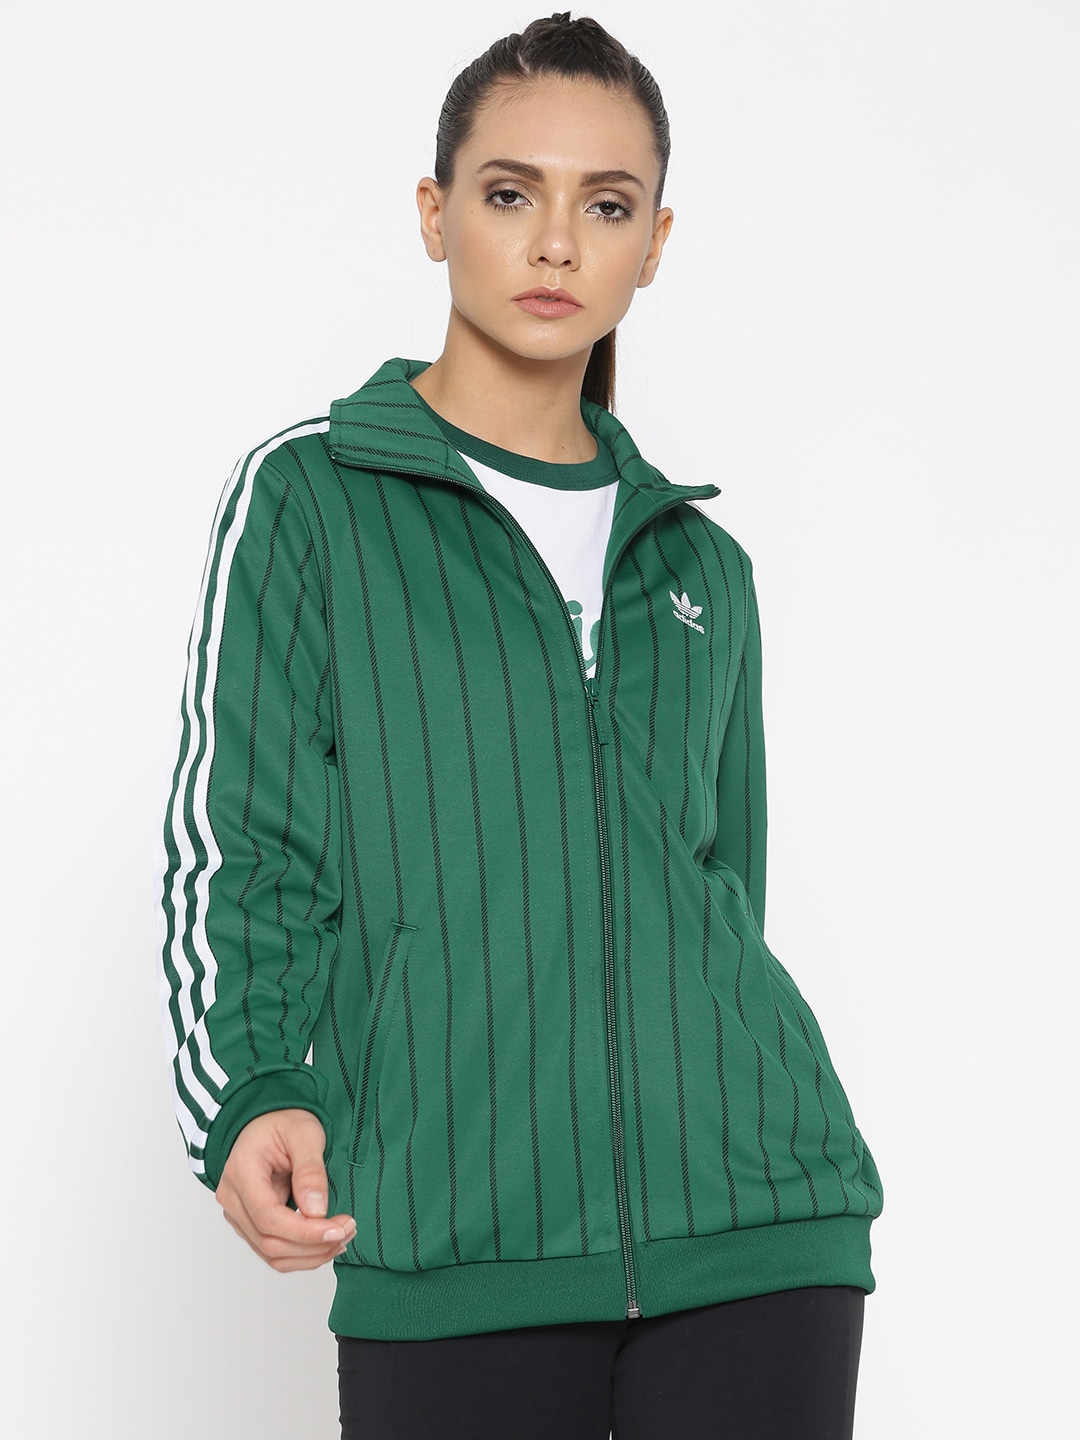 e85295beb764 Adidas Jacket - Buy Adidas Jackets for Men